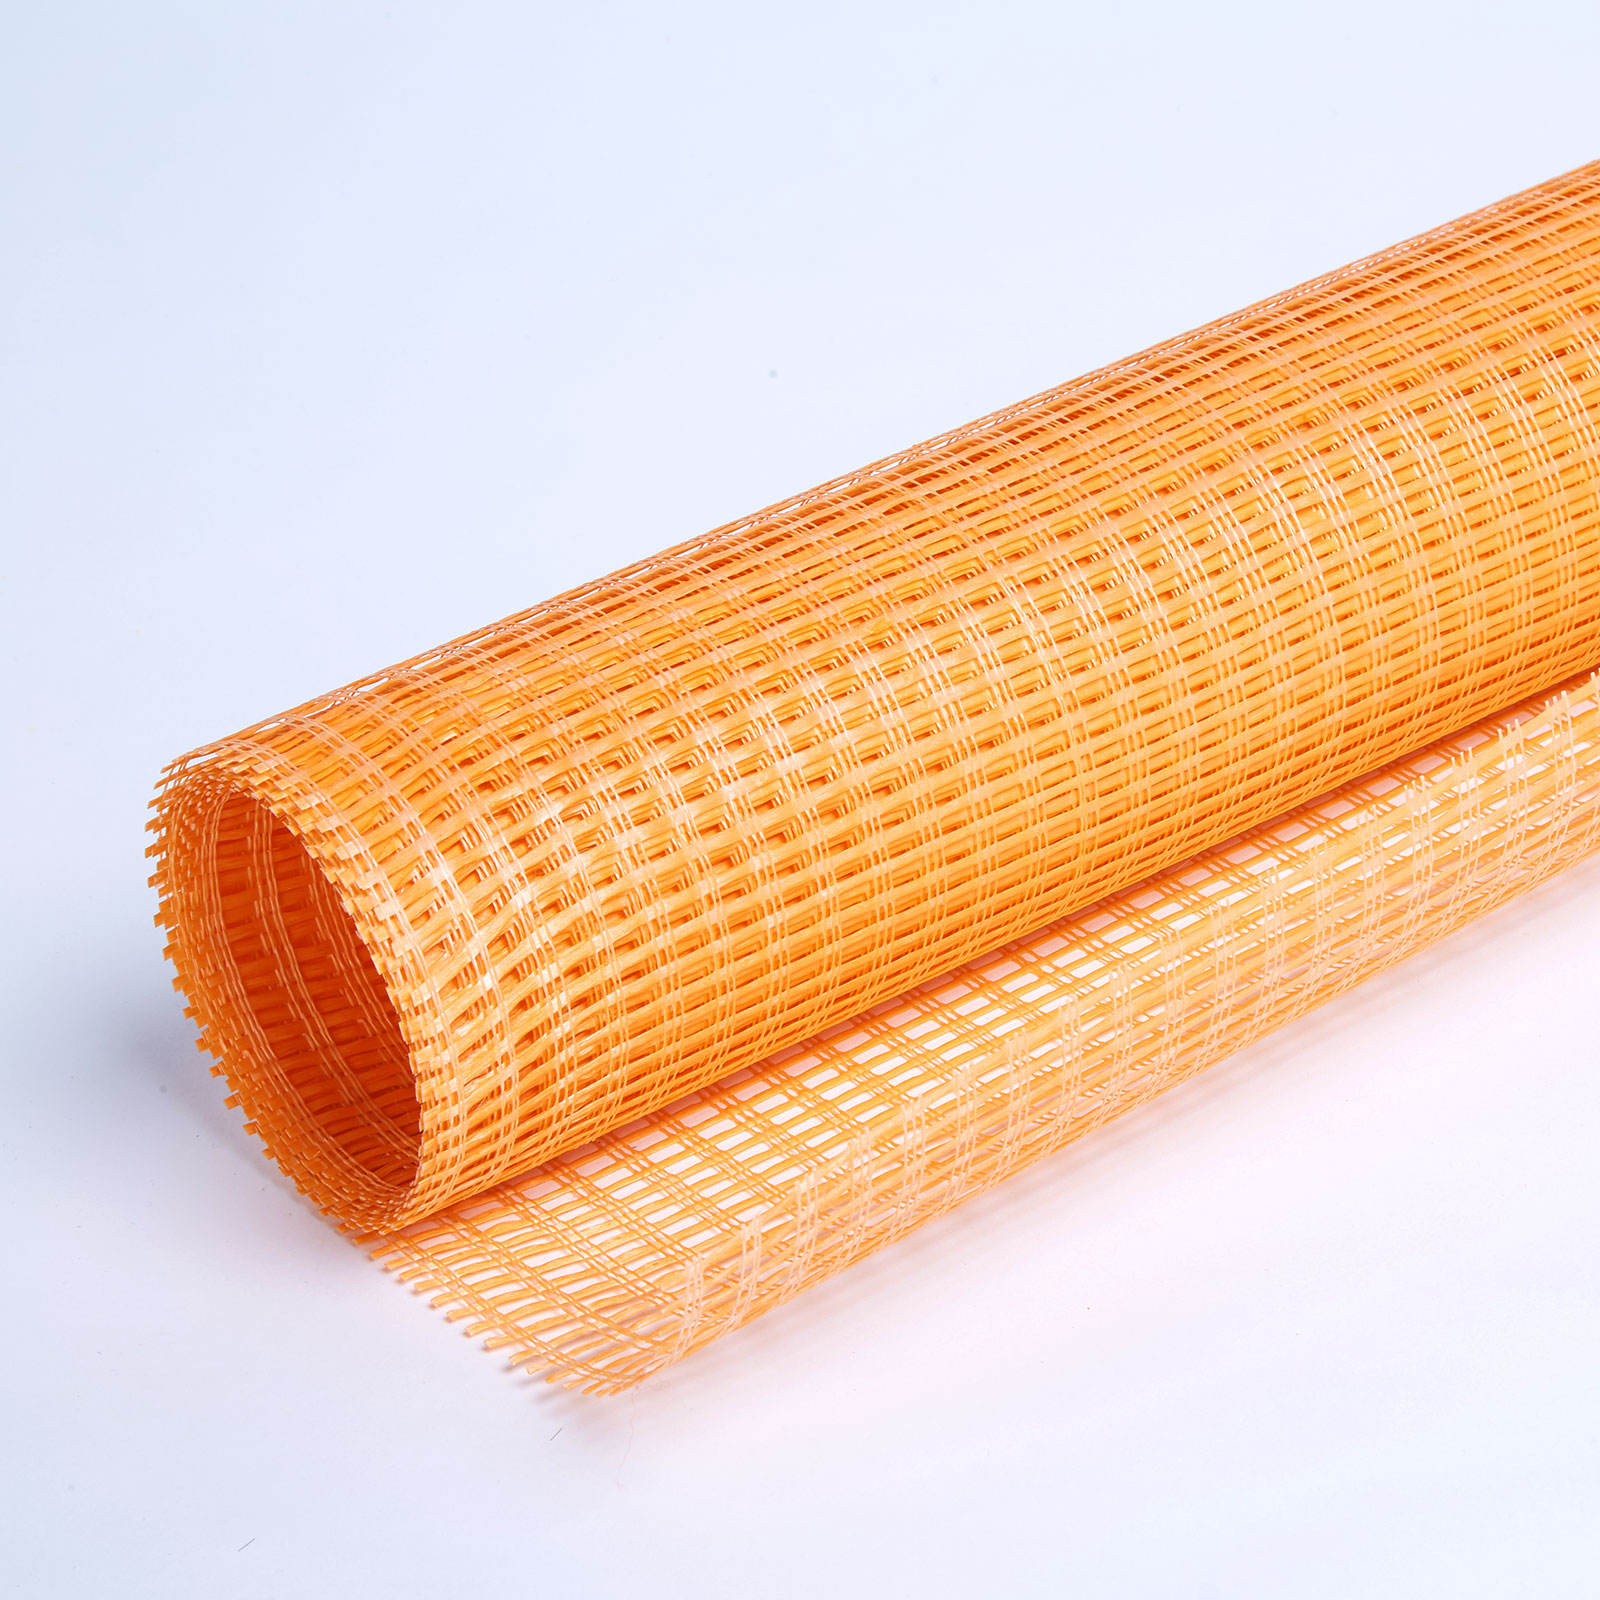 Hot selling quality fiber mesh cloth for exterior insulation and finish system